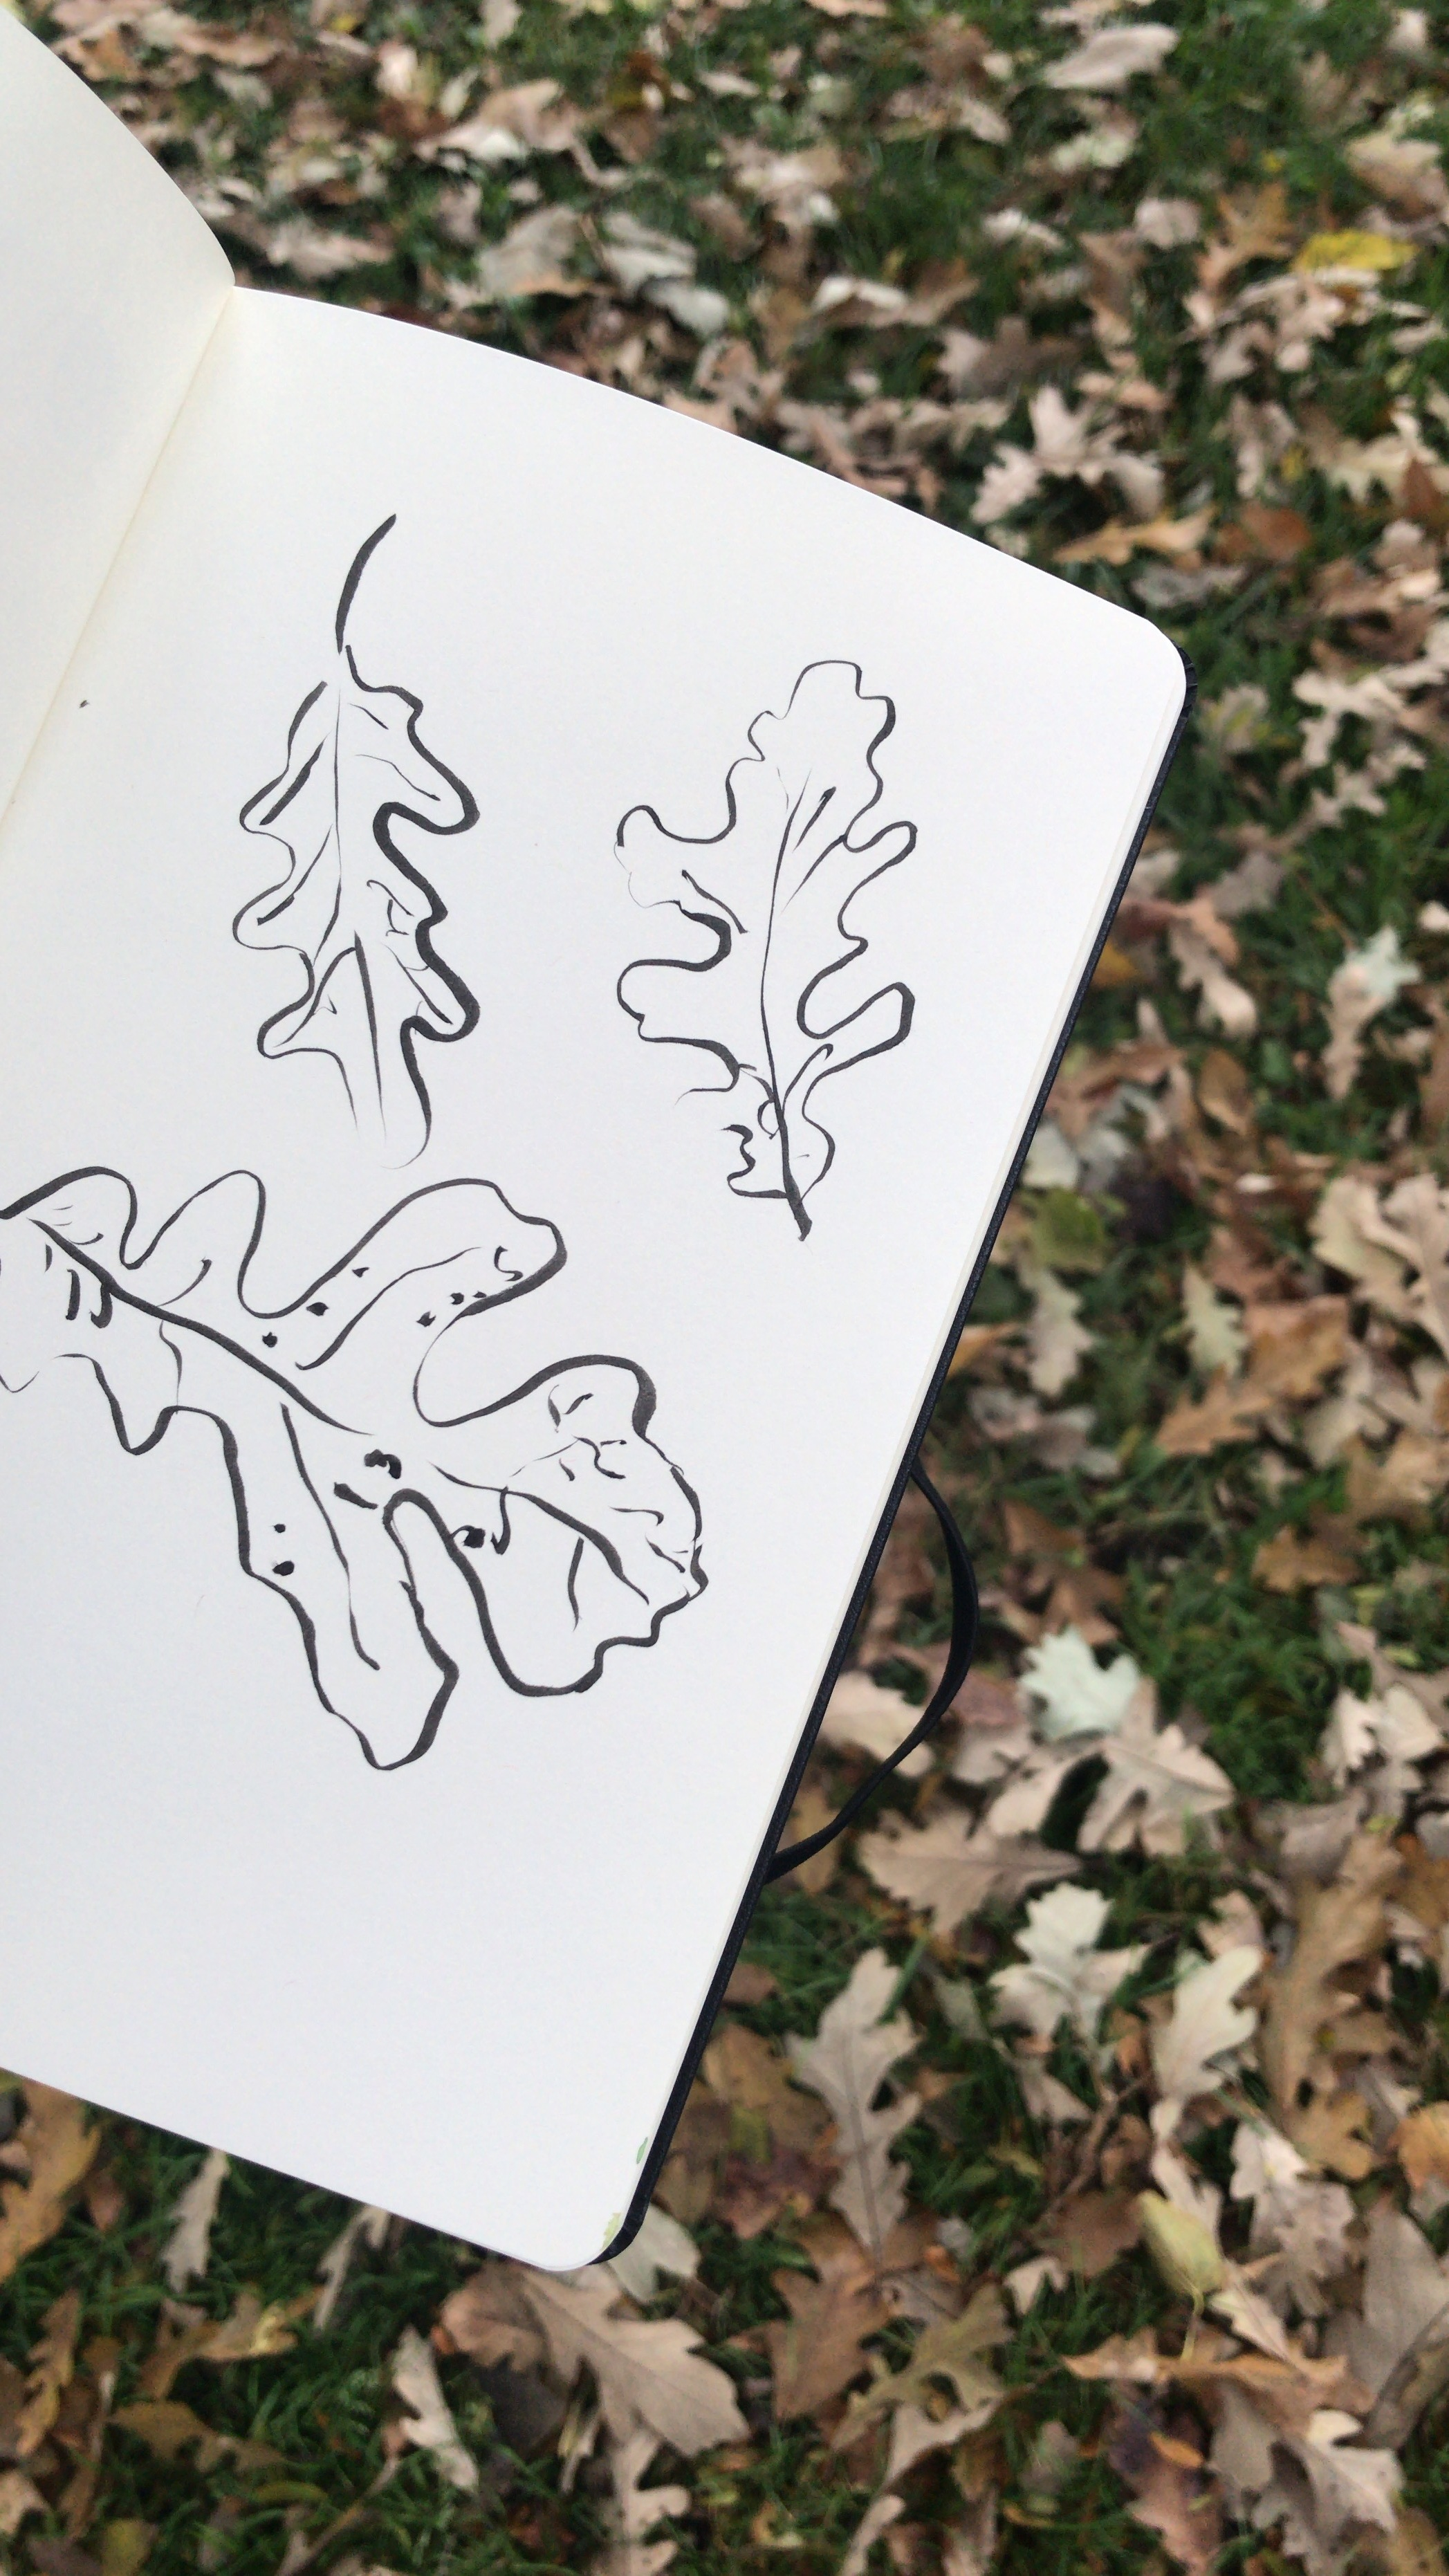 kate lewis art.fall leaves drawing.JPG